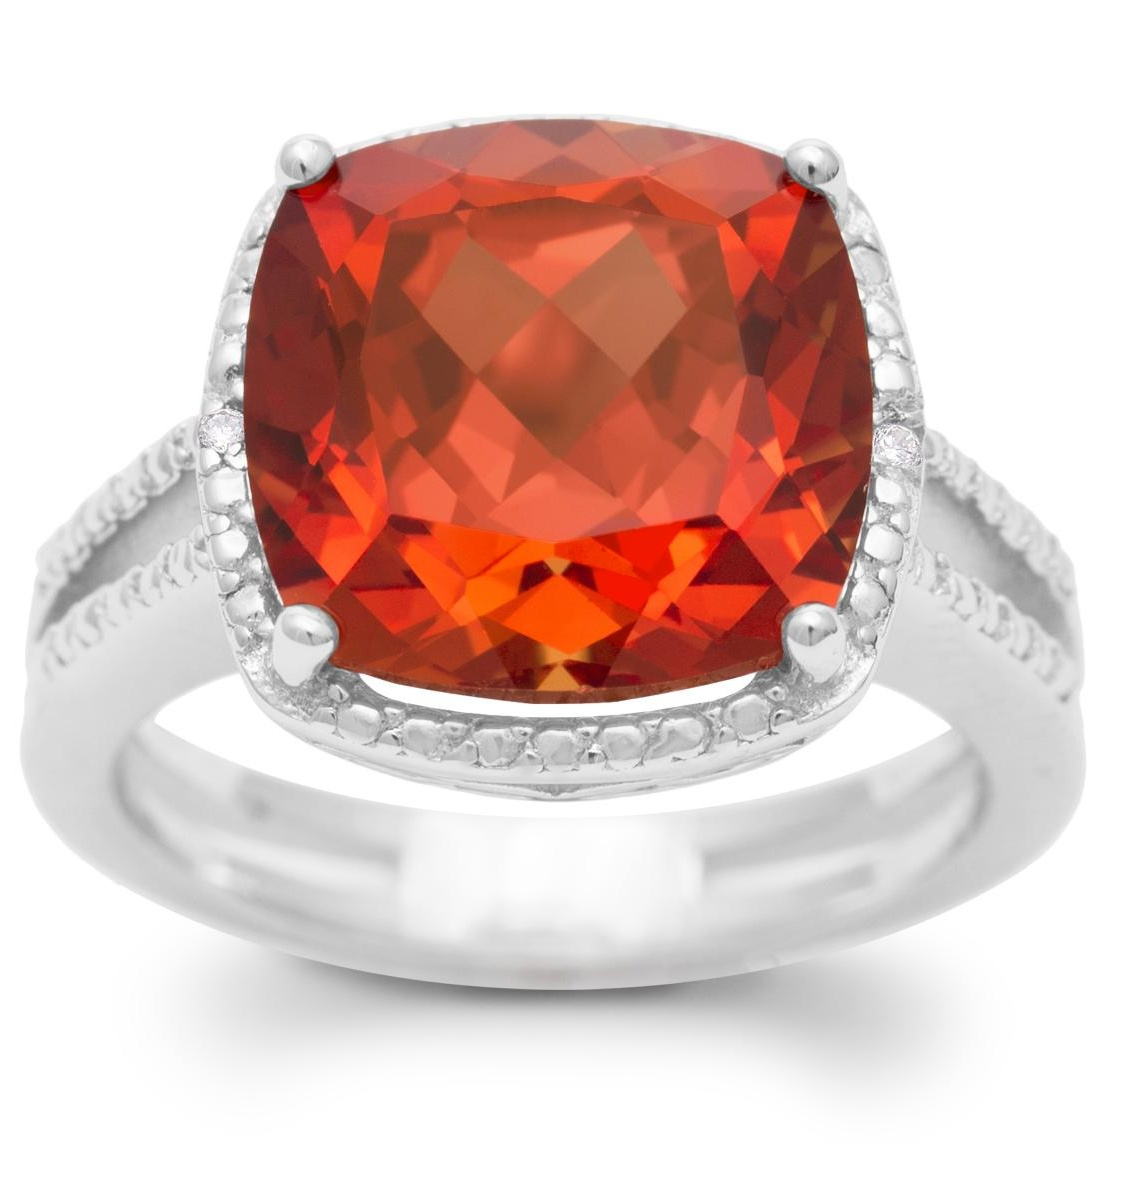 5 1/3 Carat Split Shank Cushion Cut Created Padparadscha Sapphire and Diamond Ring In Sterling Silver - 7